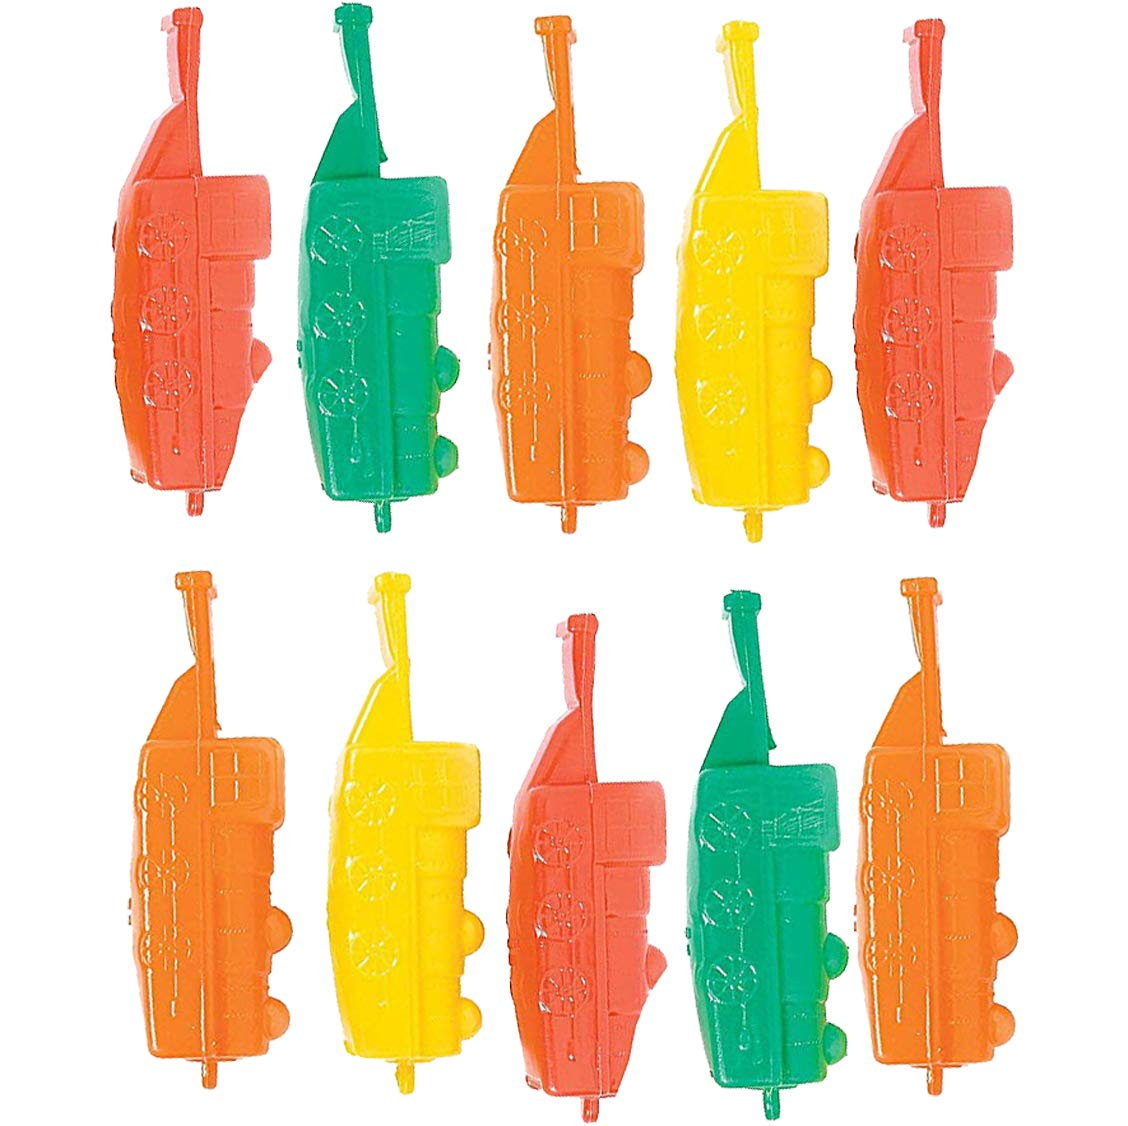 Fun Toy for Kids Great Party Favors Bag Stuffers Plastic Train Whistles 4 Inches Assorted Colors Locomotive Train Shaped Whistles Prize Pi/ñata Fillers Gift by Kidsco KCO Brands Pack of 10